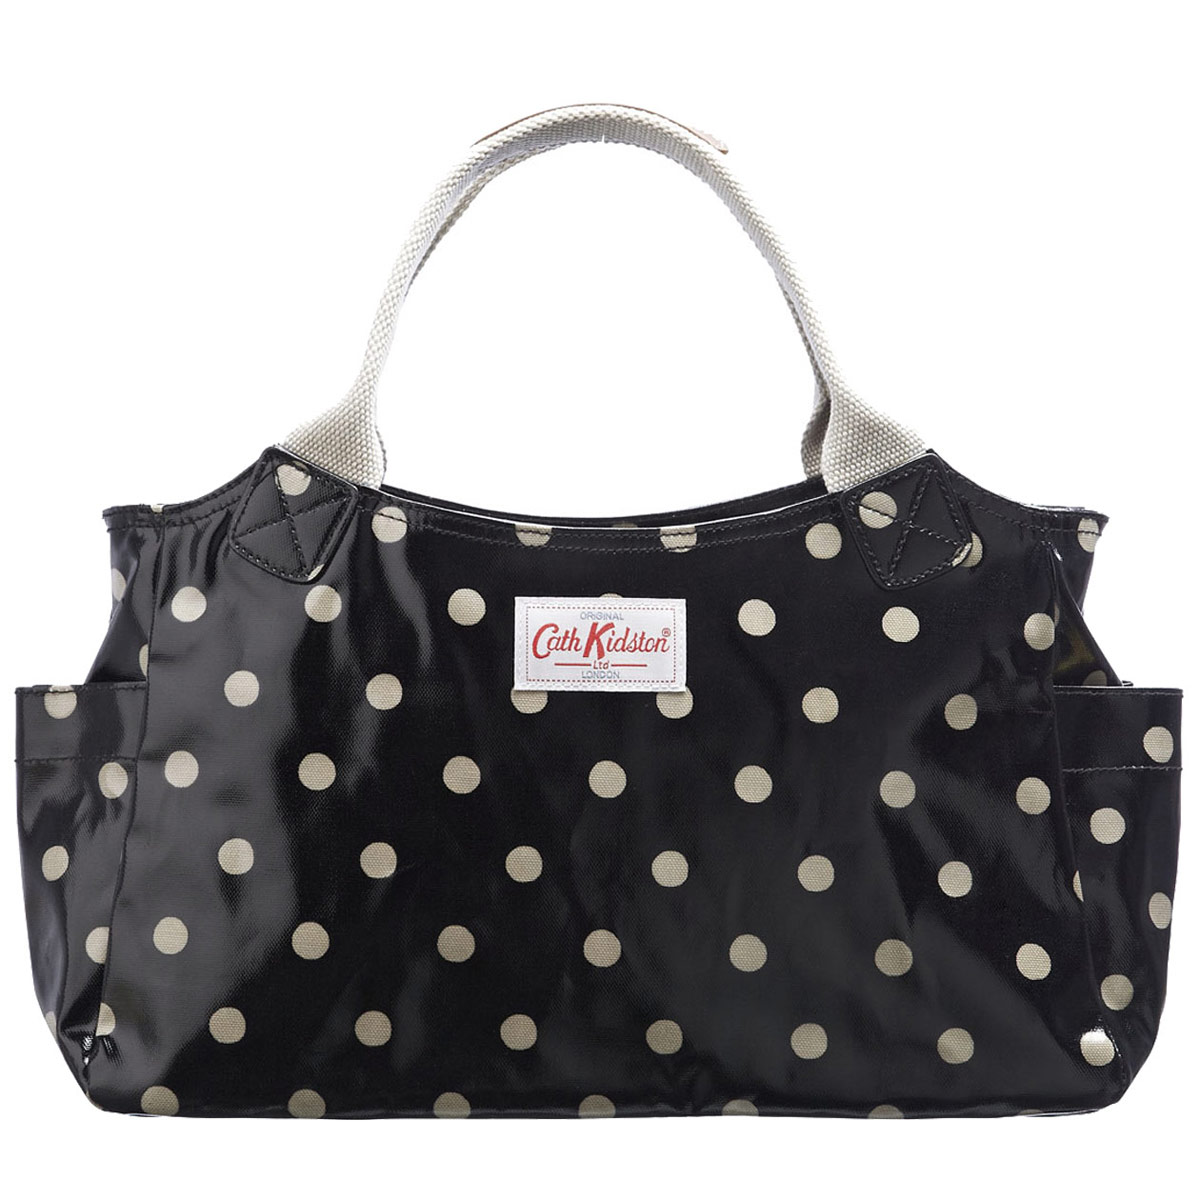 cath kidston charcoal spot bag images